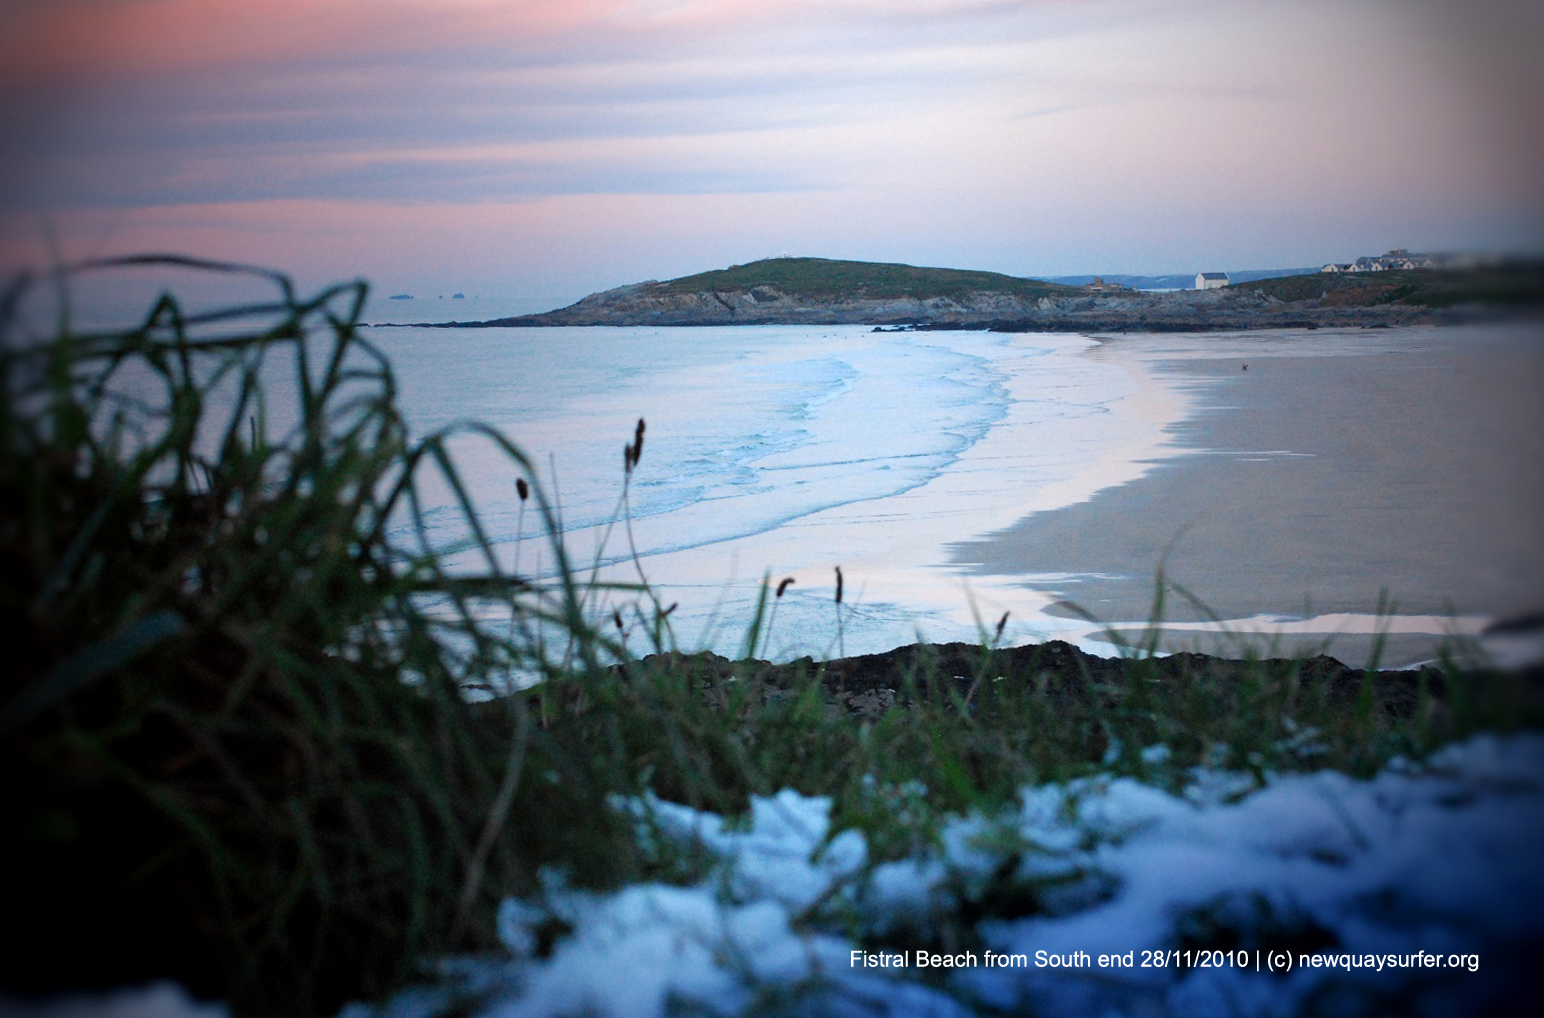 Fistral Beach Winter - View from south end